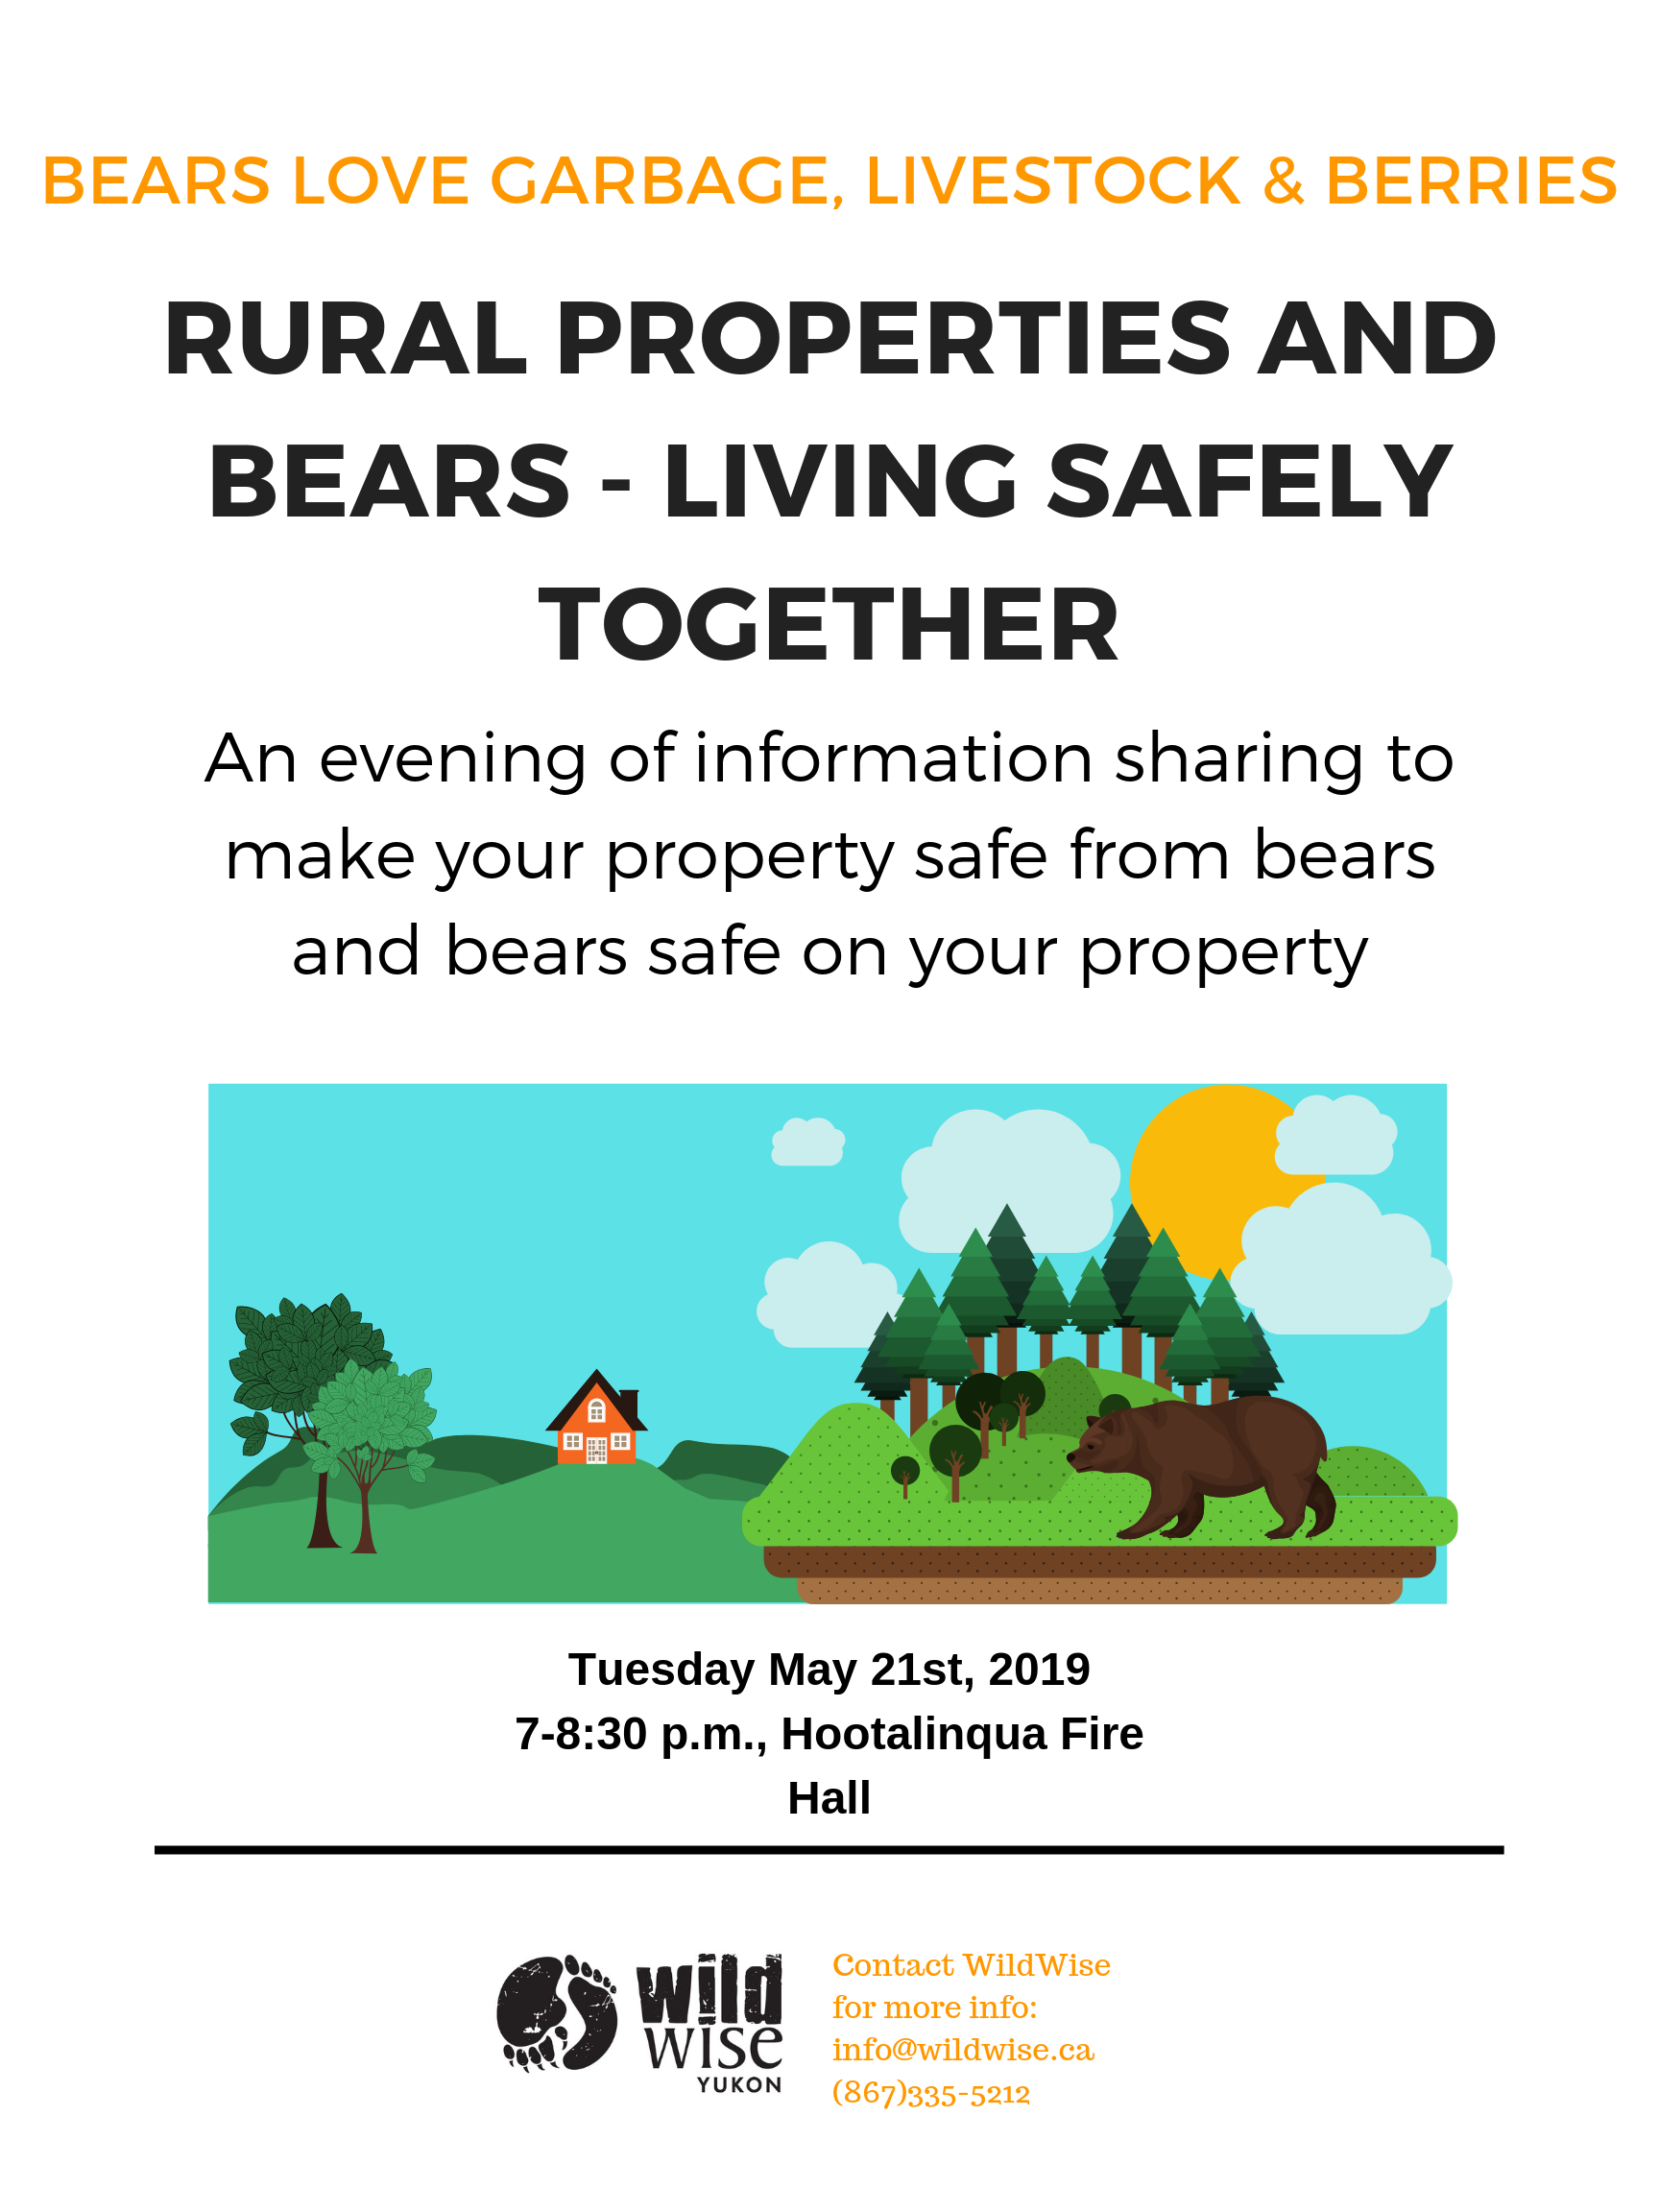 Living with bears in the Ibex Valley - Come and join us for a conversation about how attractant management can make your property safer.May 21, 7-8:30pmHootalinqua Fire Hall